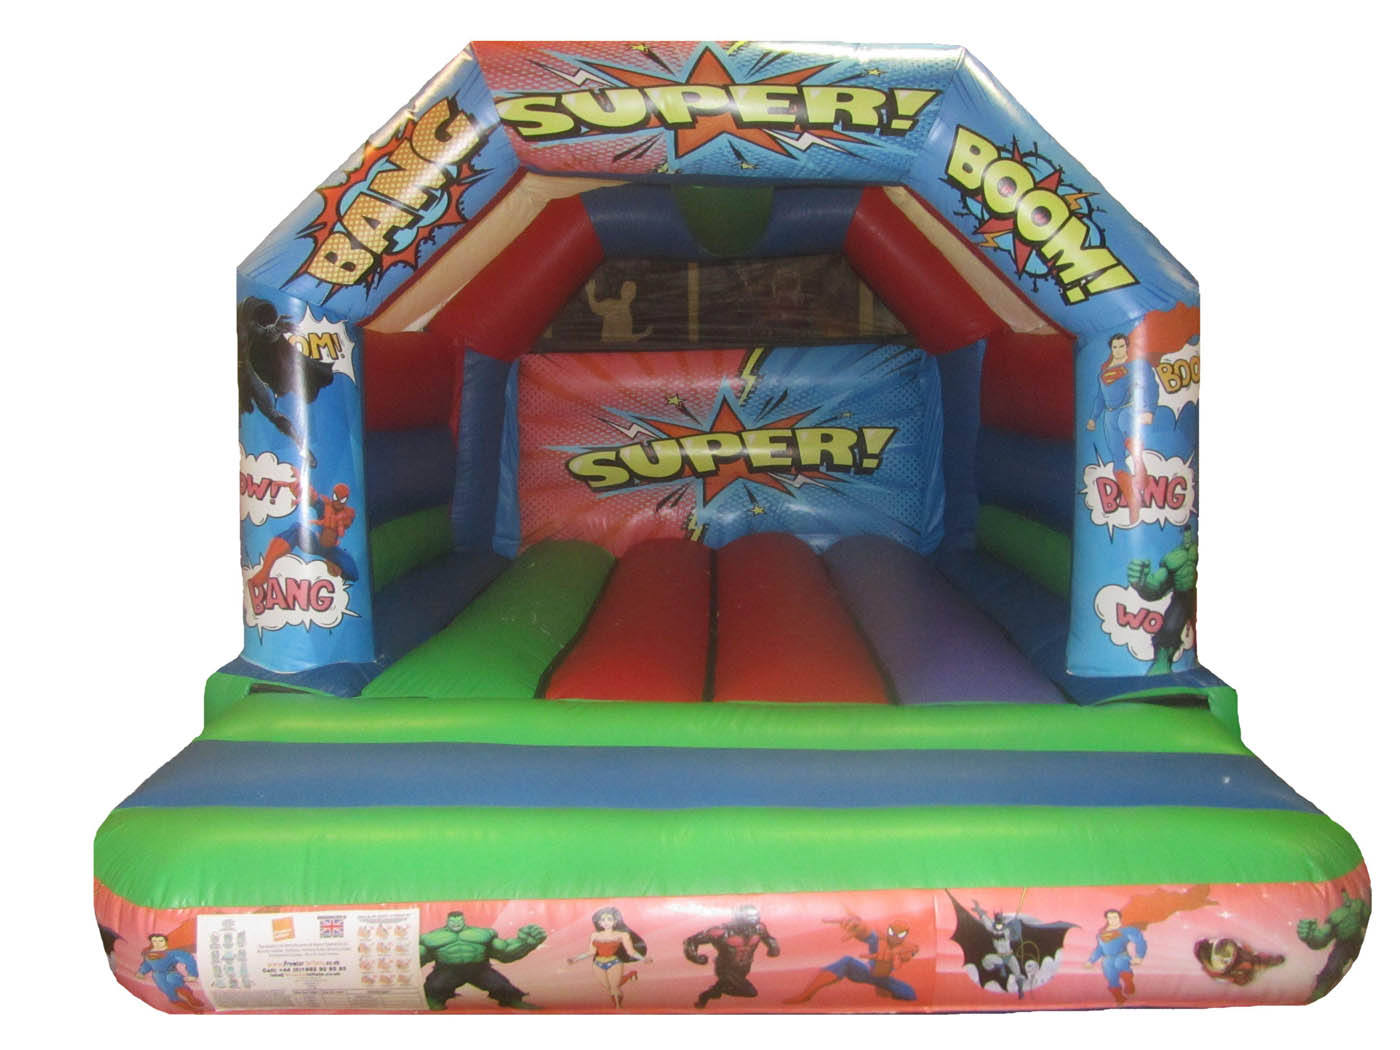 Superhero Themed Commercial Bouncy Castle